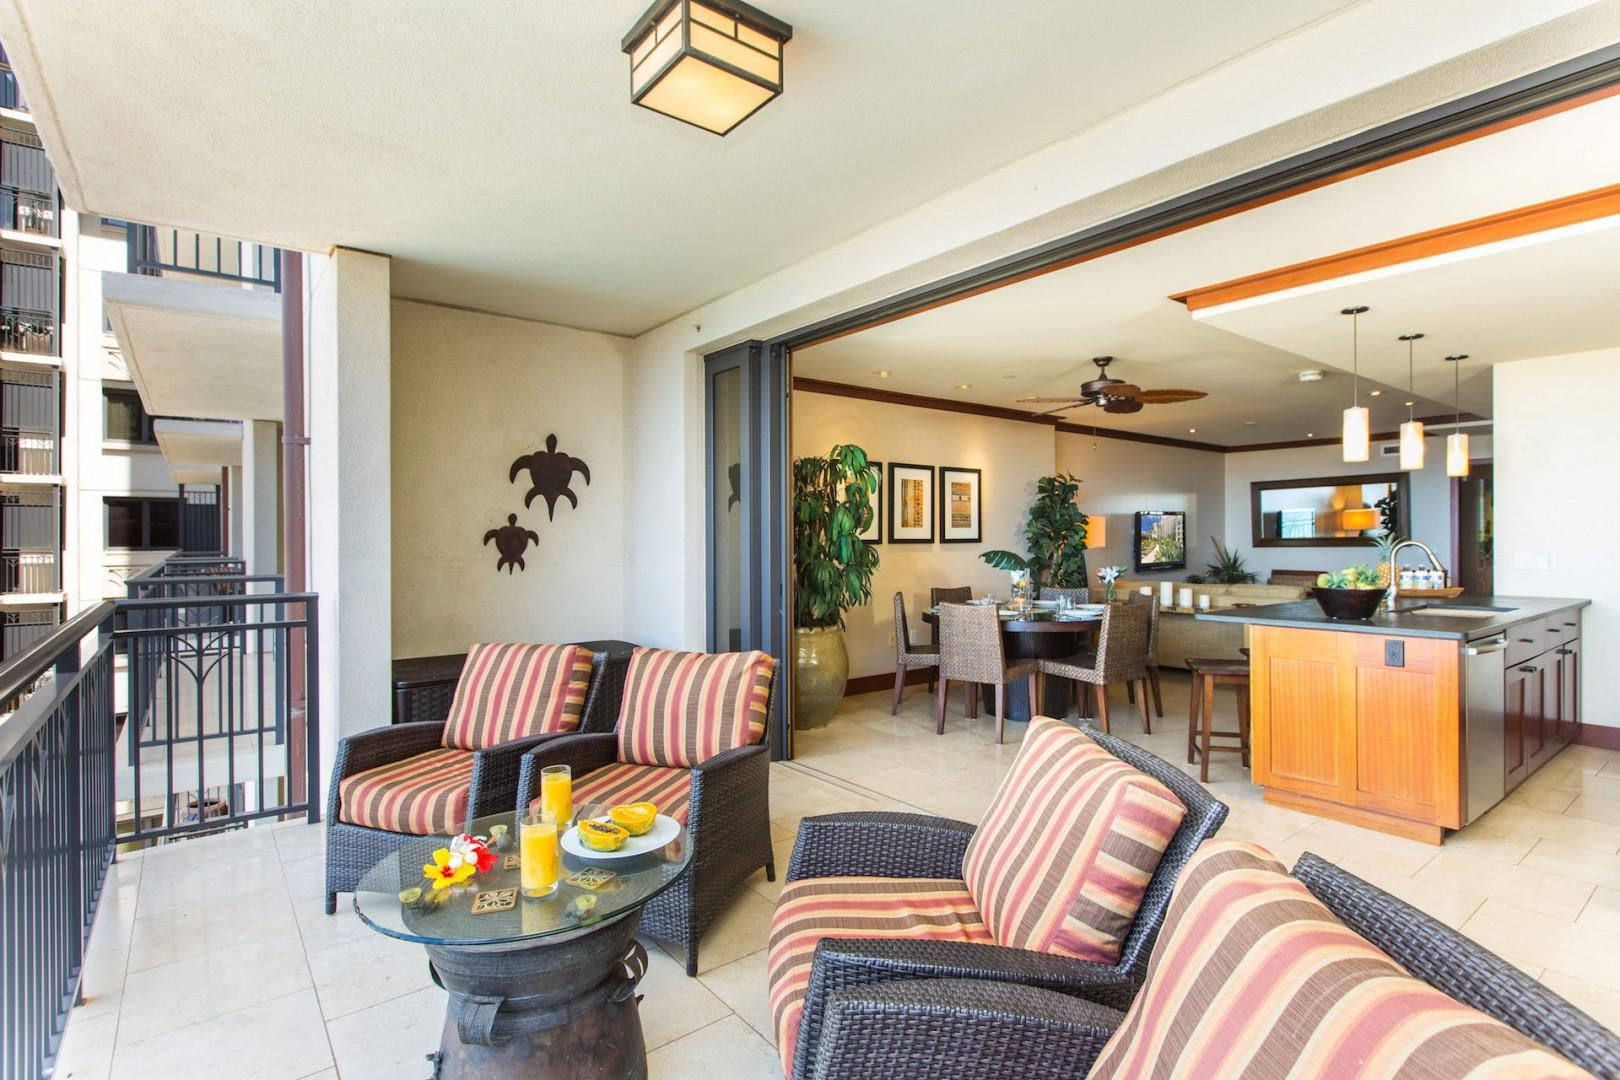 Large lanai with pocket lanai doors blends indoor and outdoor living. Small fridge on the lanai for additional beverages.